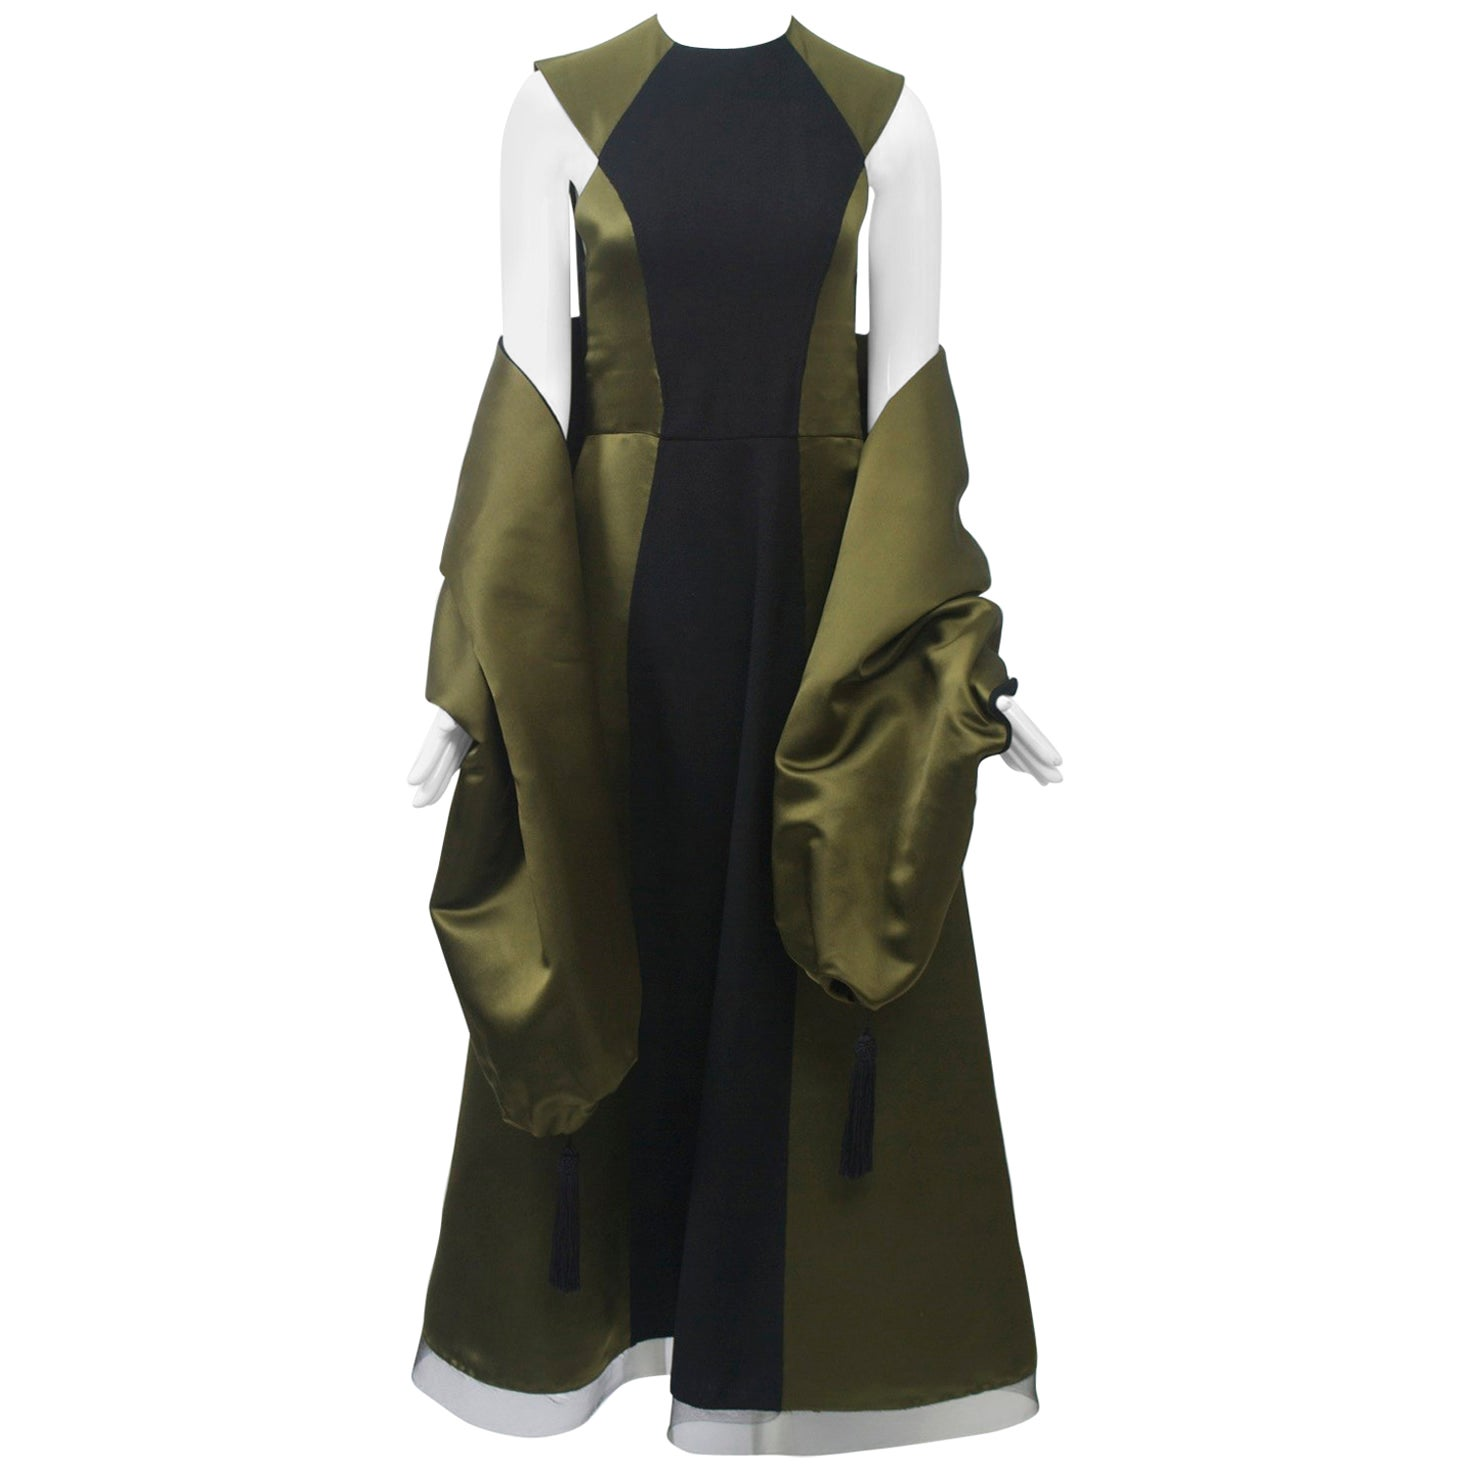 Geoffrey Beene Olive/Black Gown with Stole